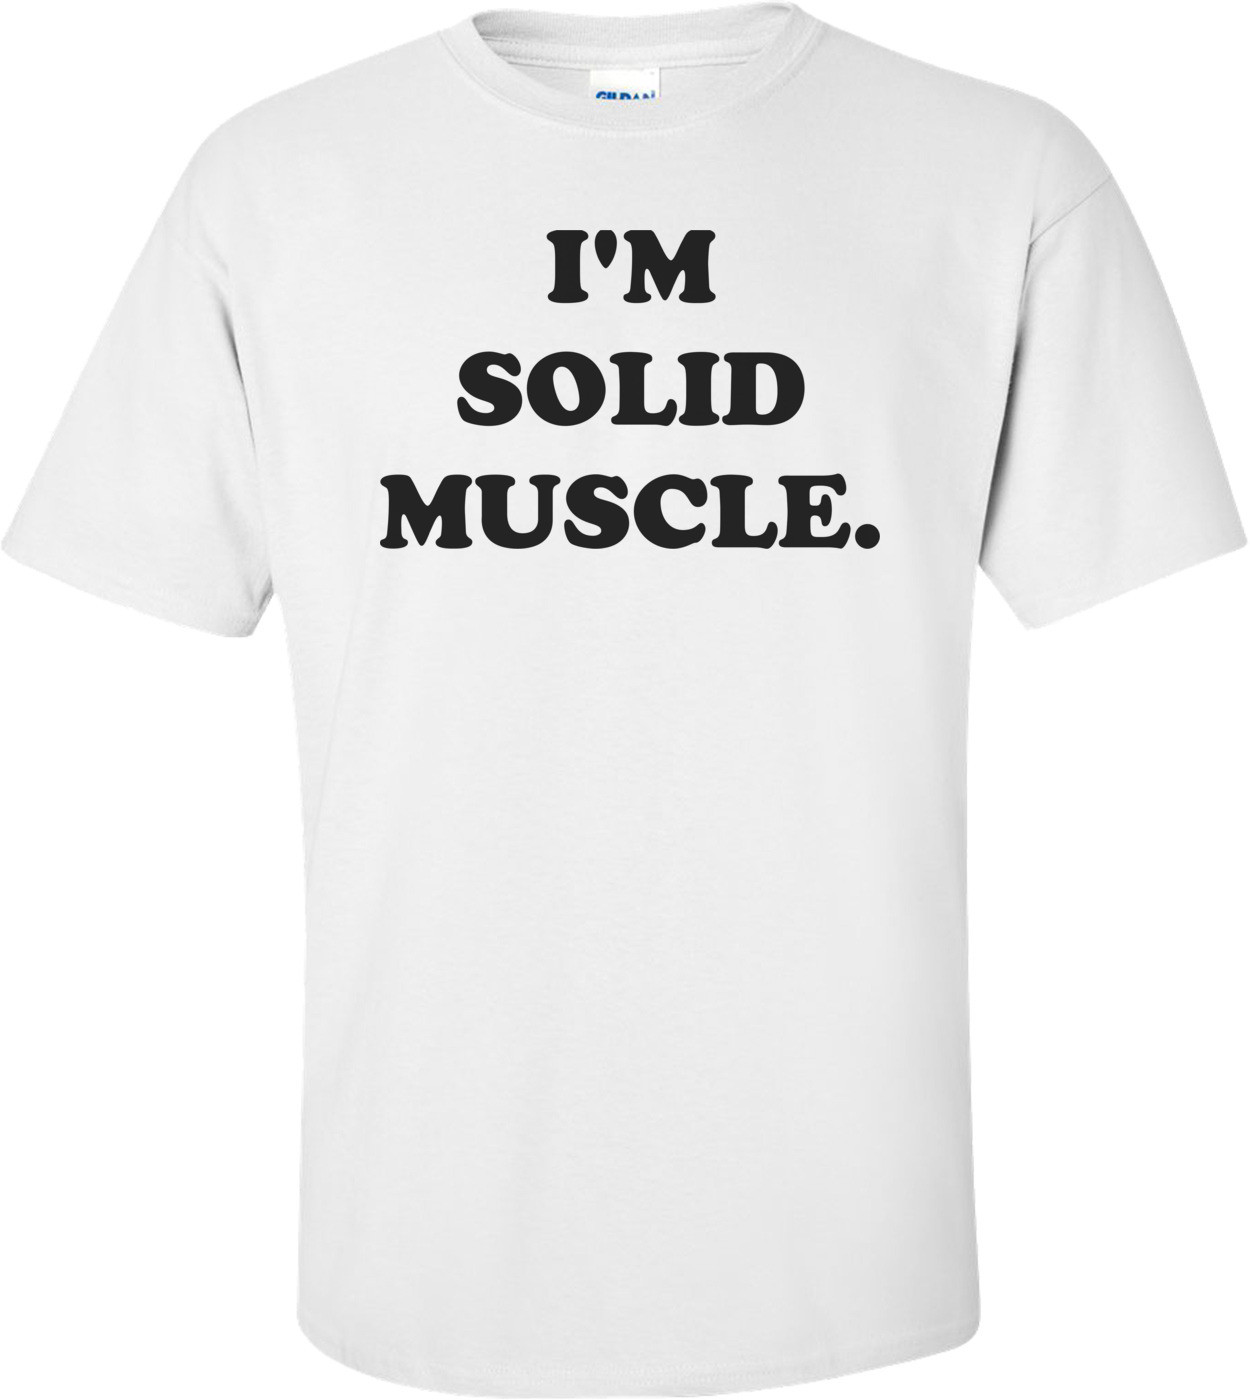 I'M SOLID MUSCLE. Shirt